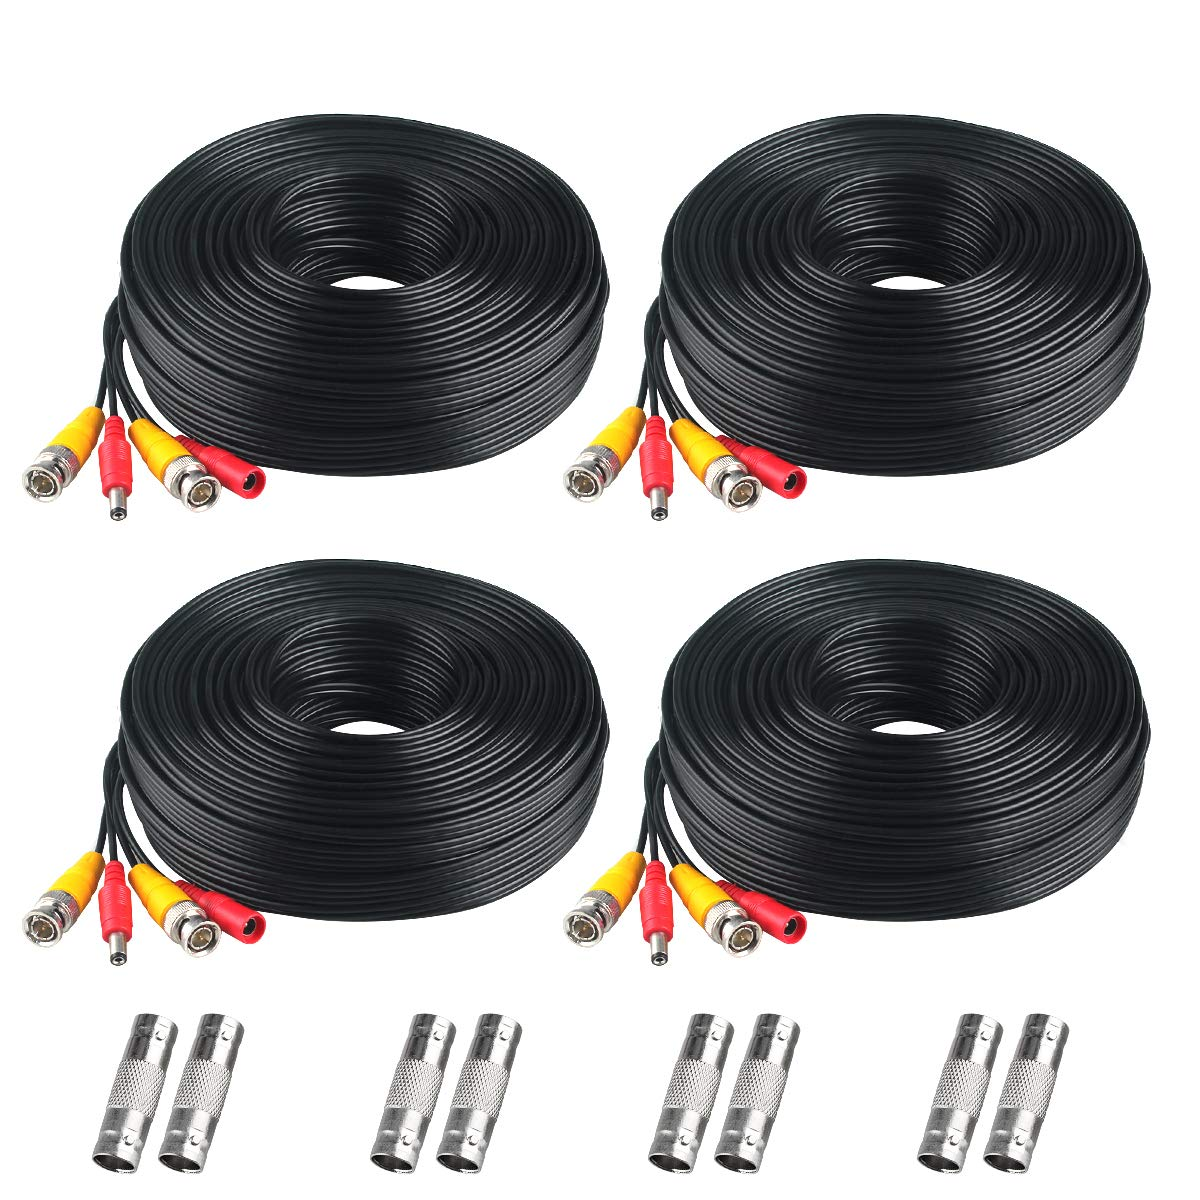 BNC Cable, 200ft 4Pack All-in-One Siames Video and Power Security Camera Wire Cord with 2 Female Connectors for All HD CCTV DVR Surveillance System (4x200FT BNC Cable Black)